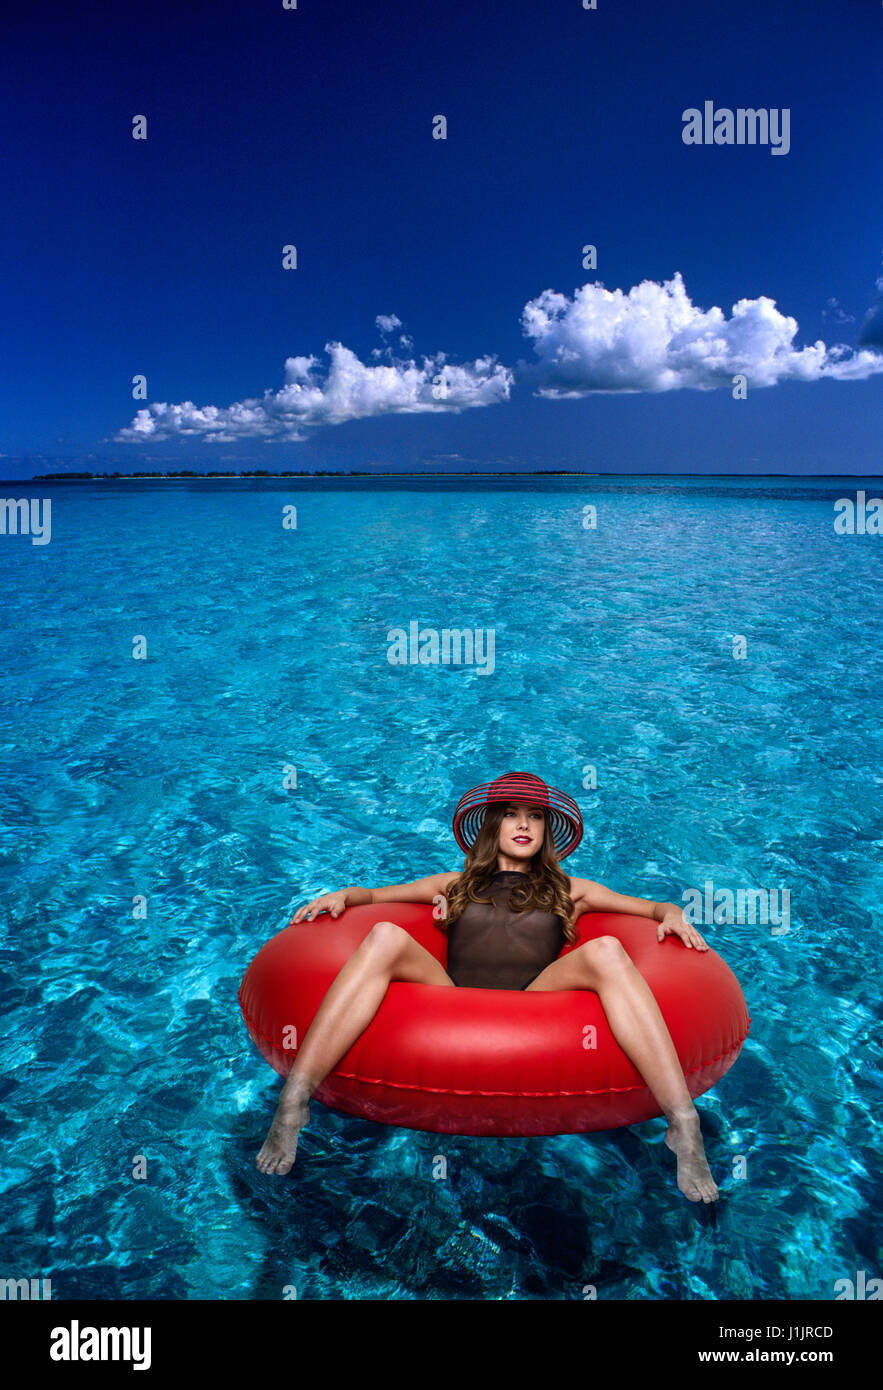 Young woman floating in an inner tube - Stock Image